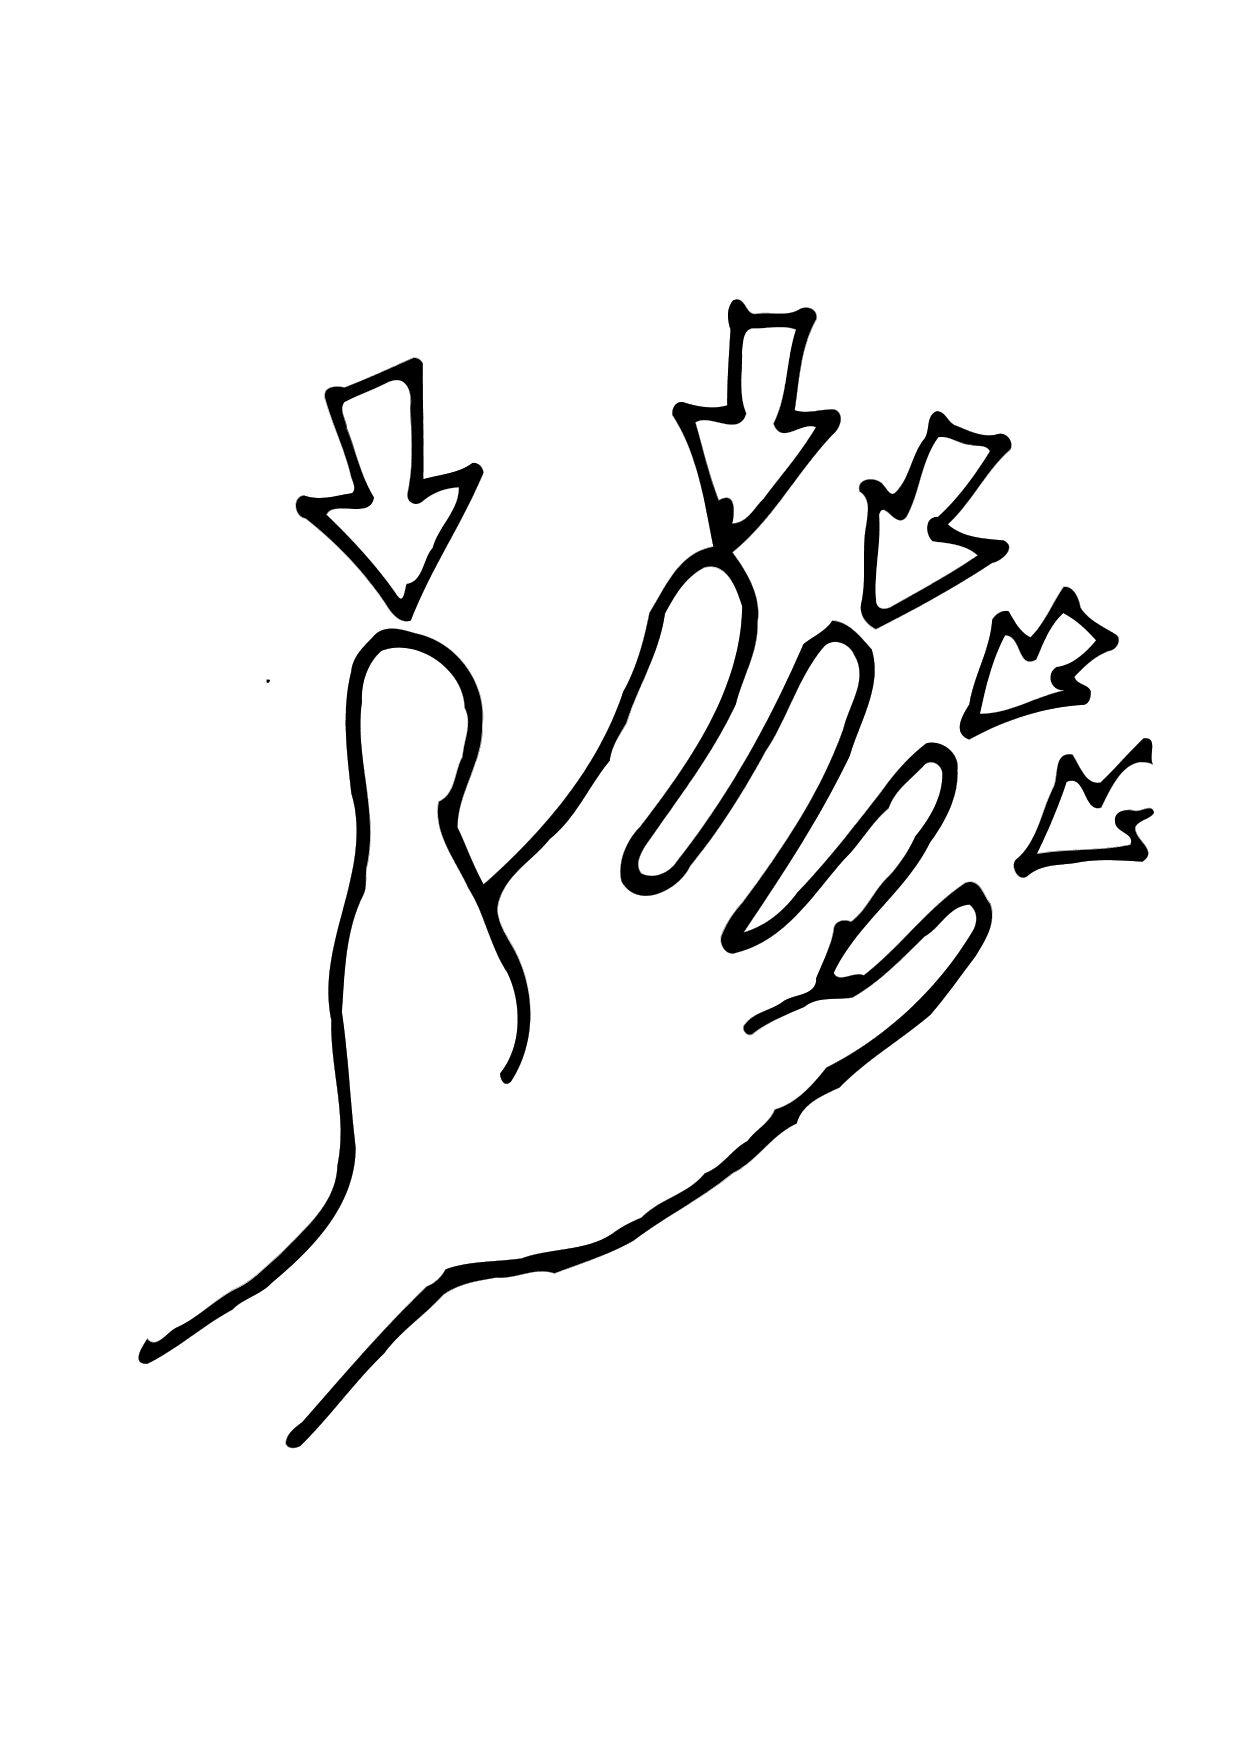 Finger coloring #17, Download drawings